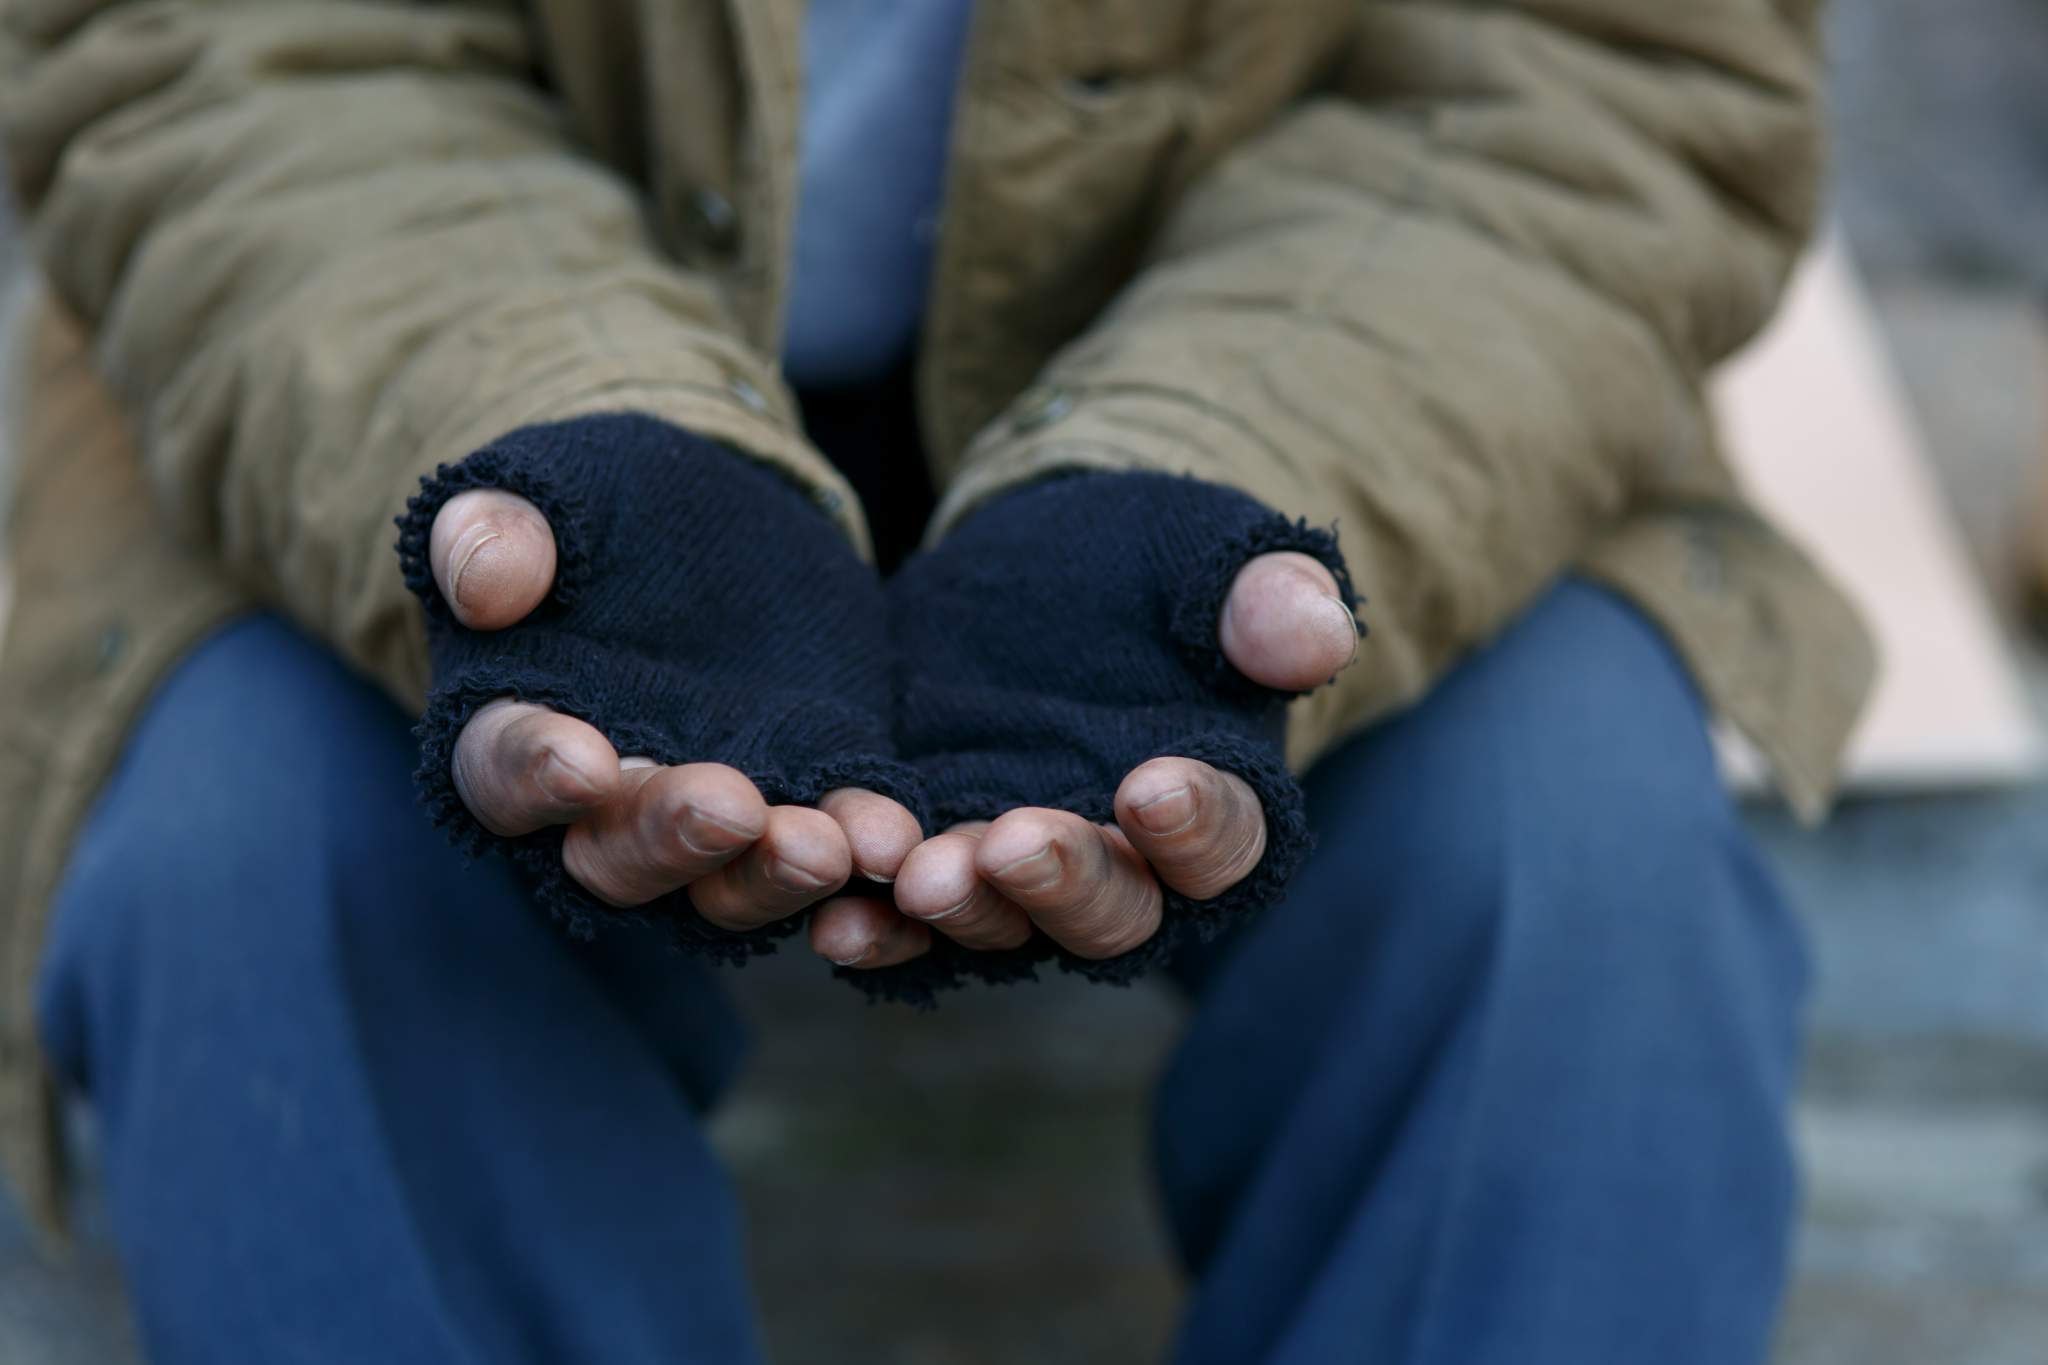 Homeless man holding hands out wearing torn, blue mitts.